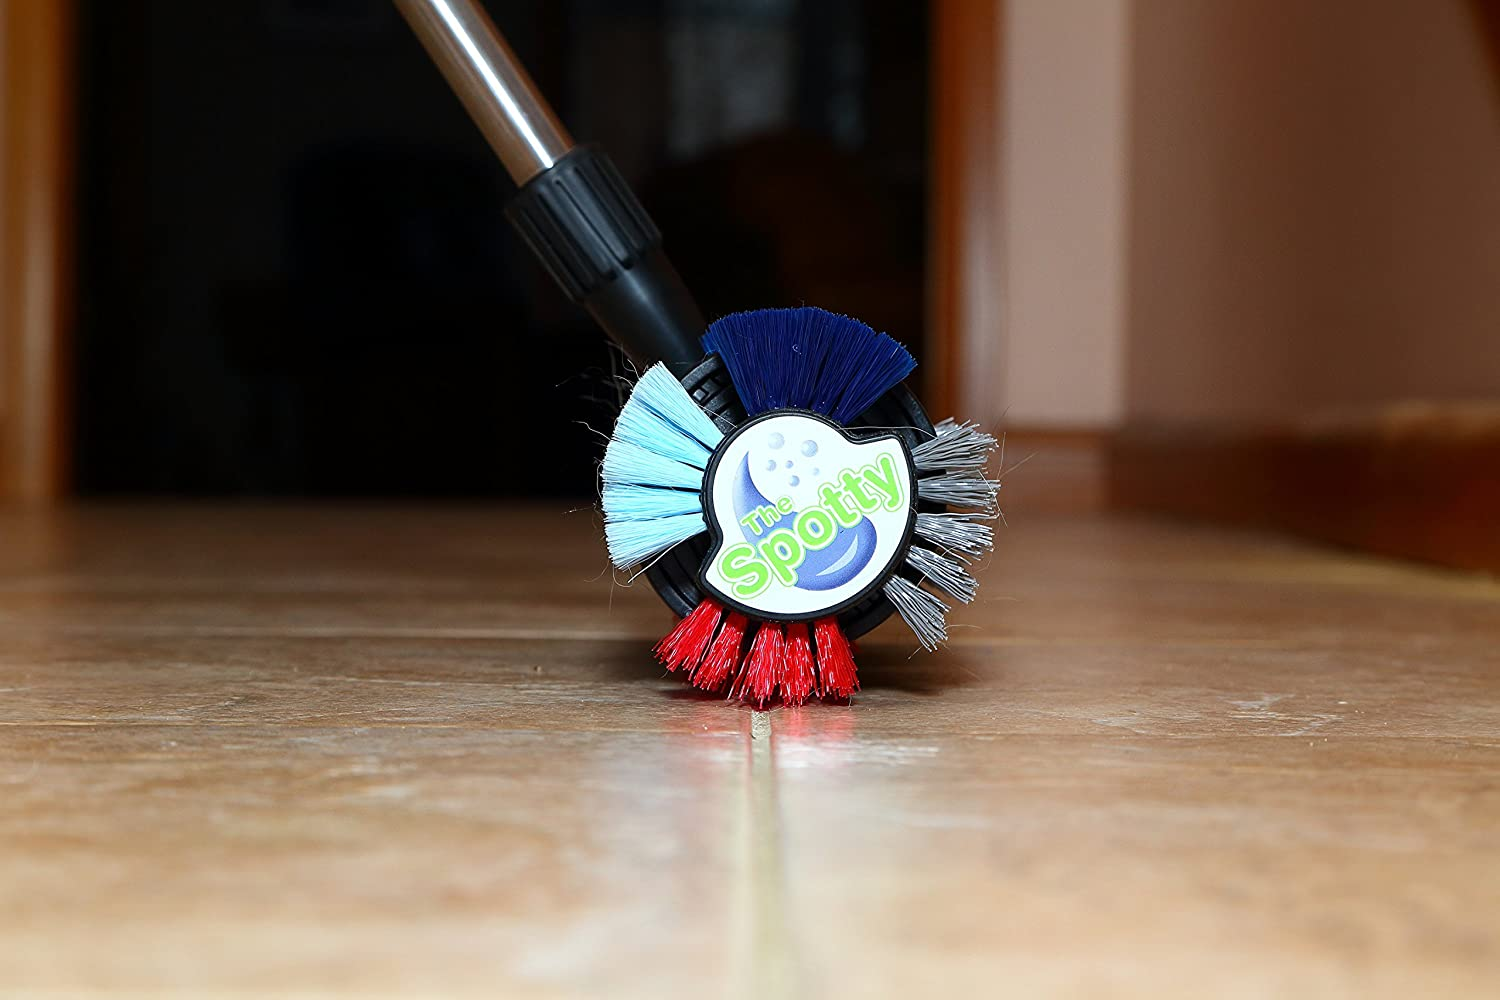 Rug Artificial Grass/Turf & Tile Cleaning Brush by CLEANOVATION The SPOTTY ~ Carpet